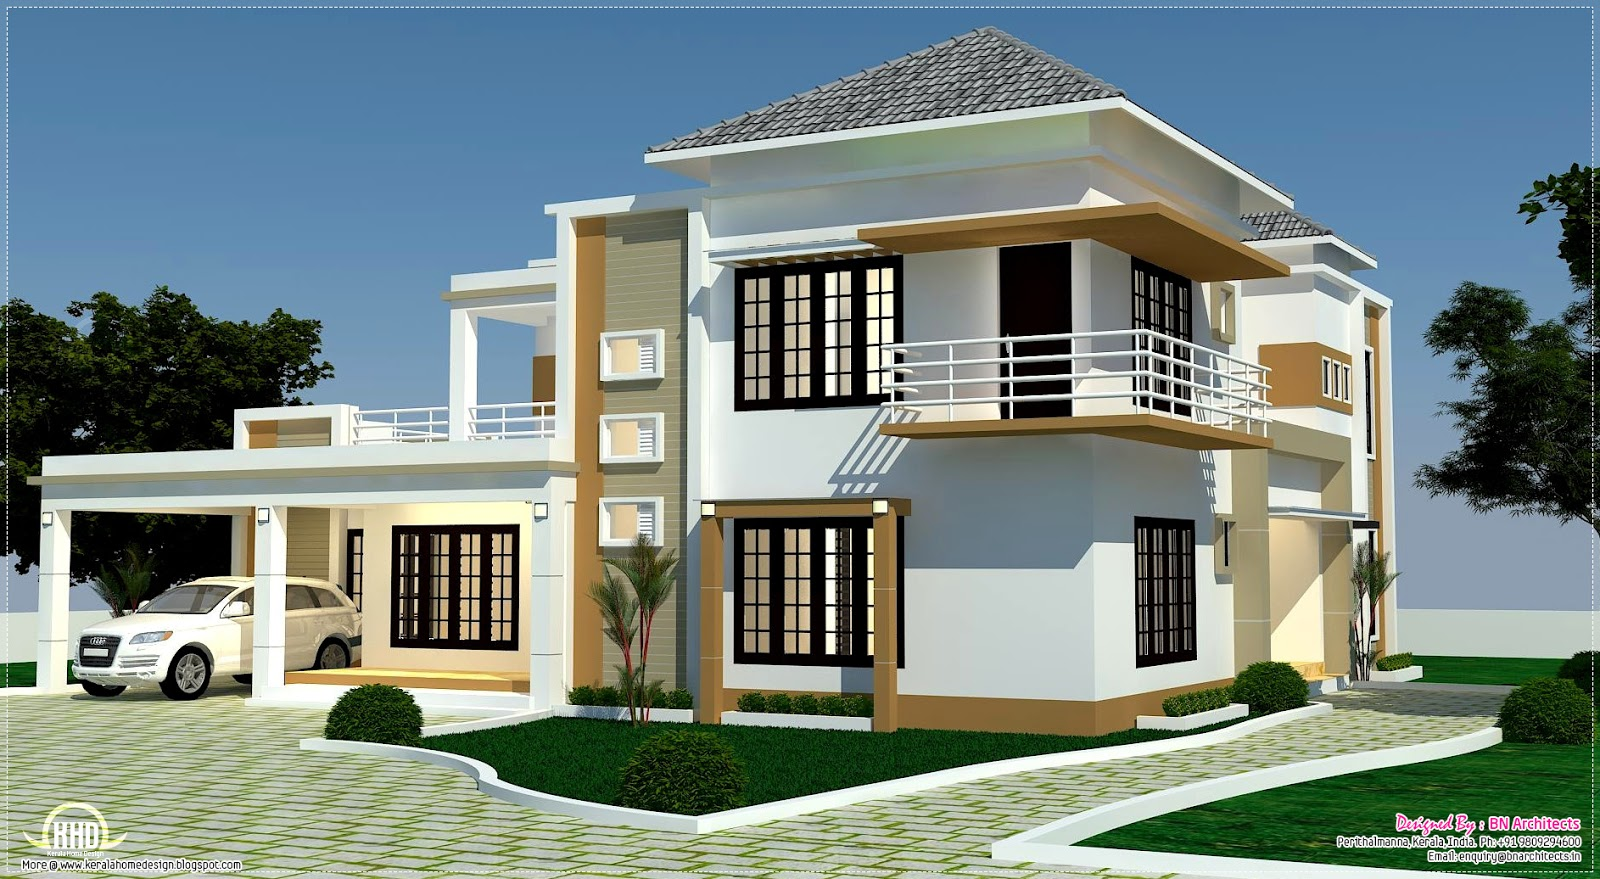 Floor plan 3d views and interiors of 4 bedroom villa Home plan 3d